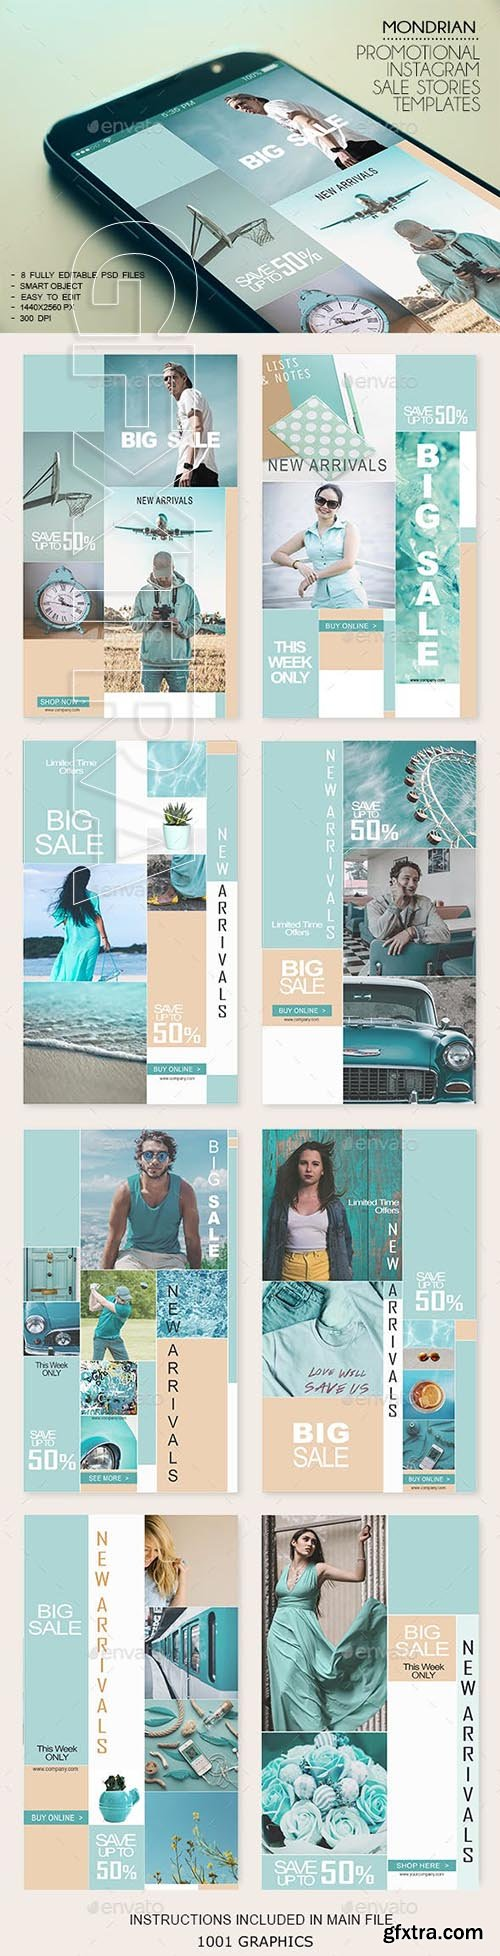 GraphicRiver - 8 Mondrian Insta-Stories Sale PSD Templates 23116580